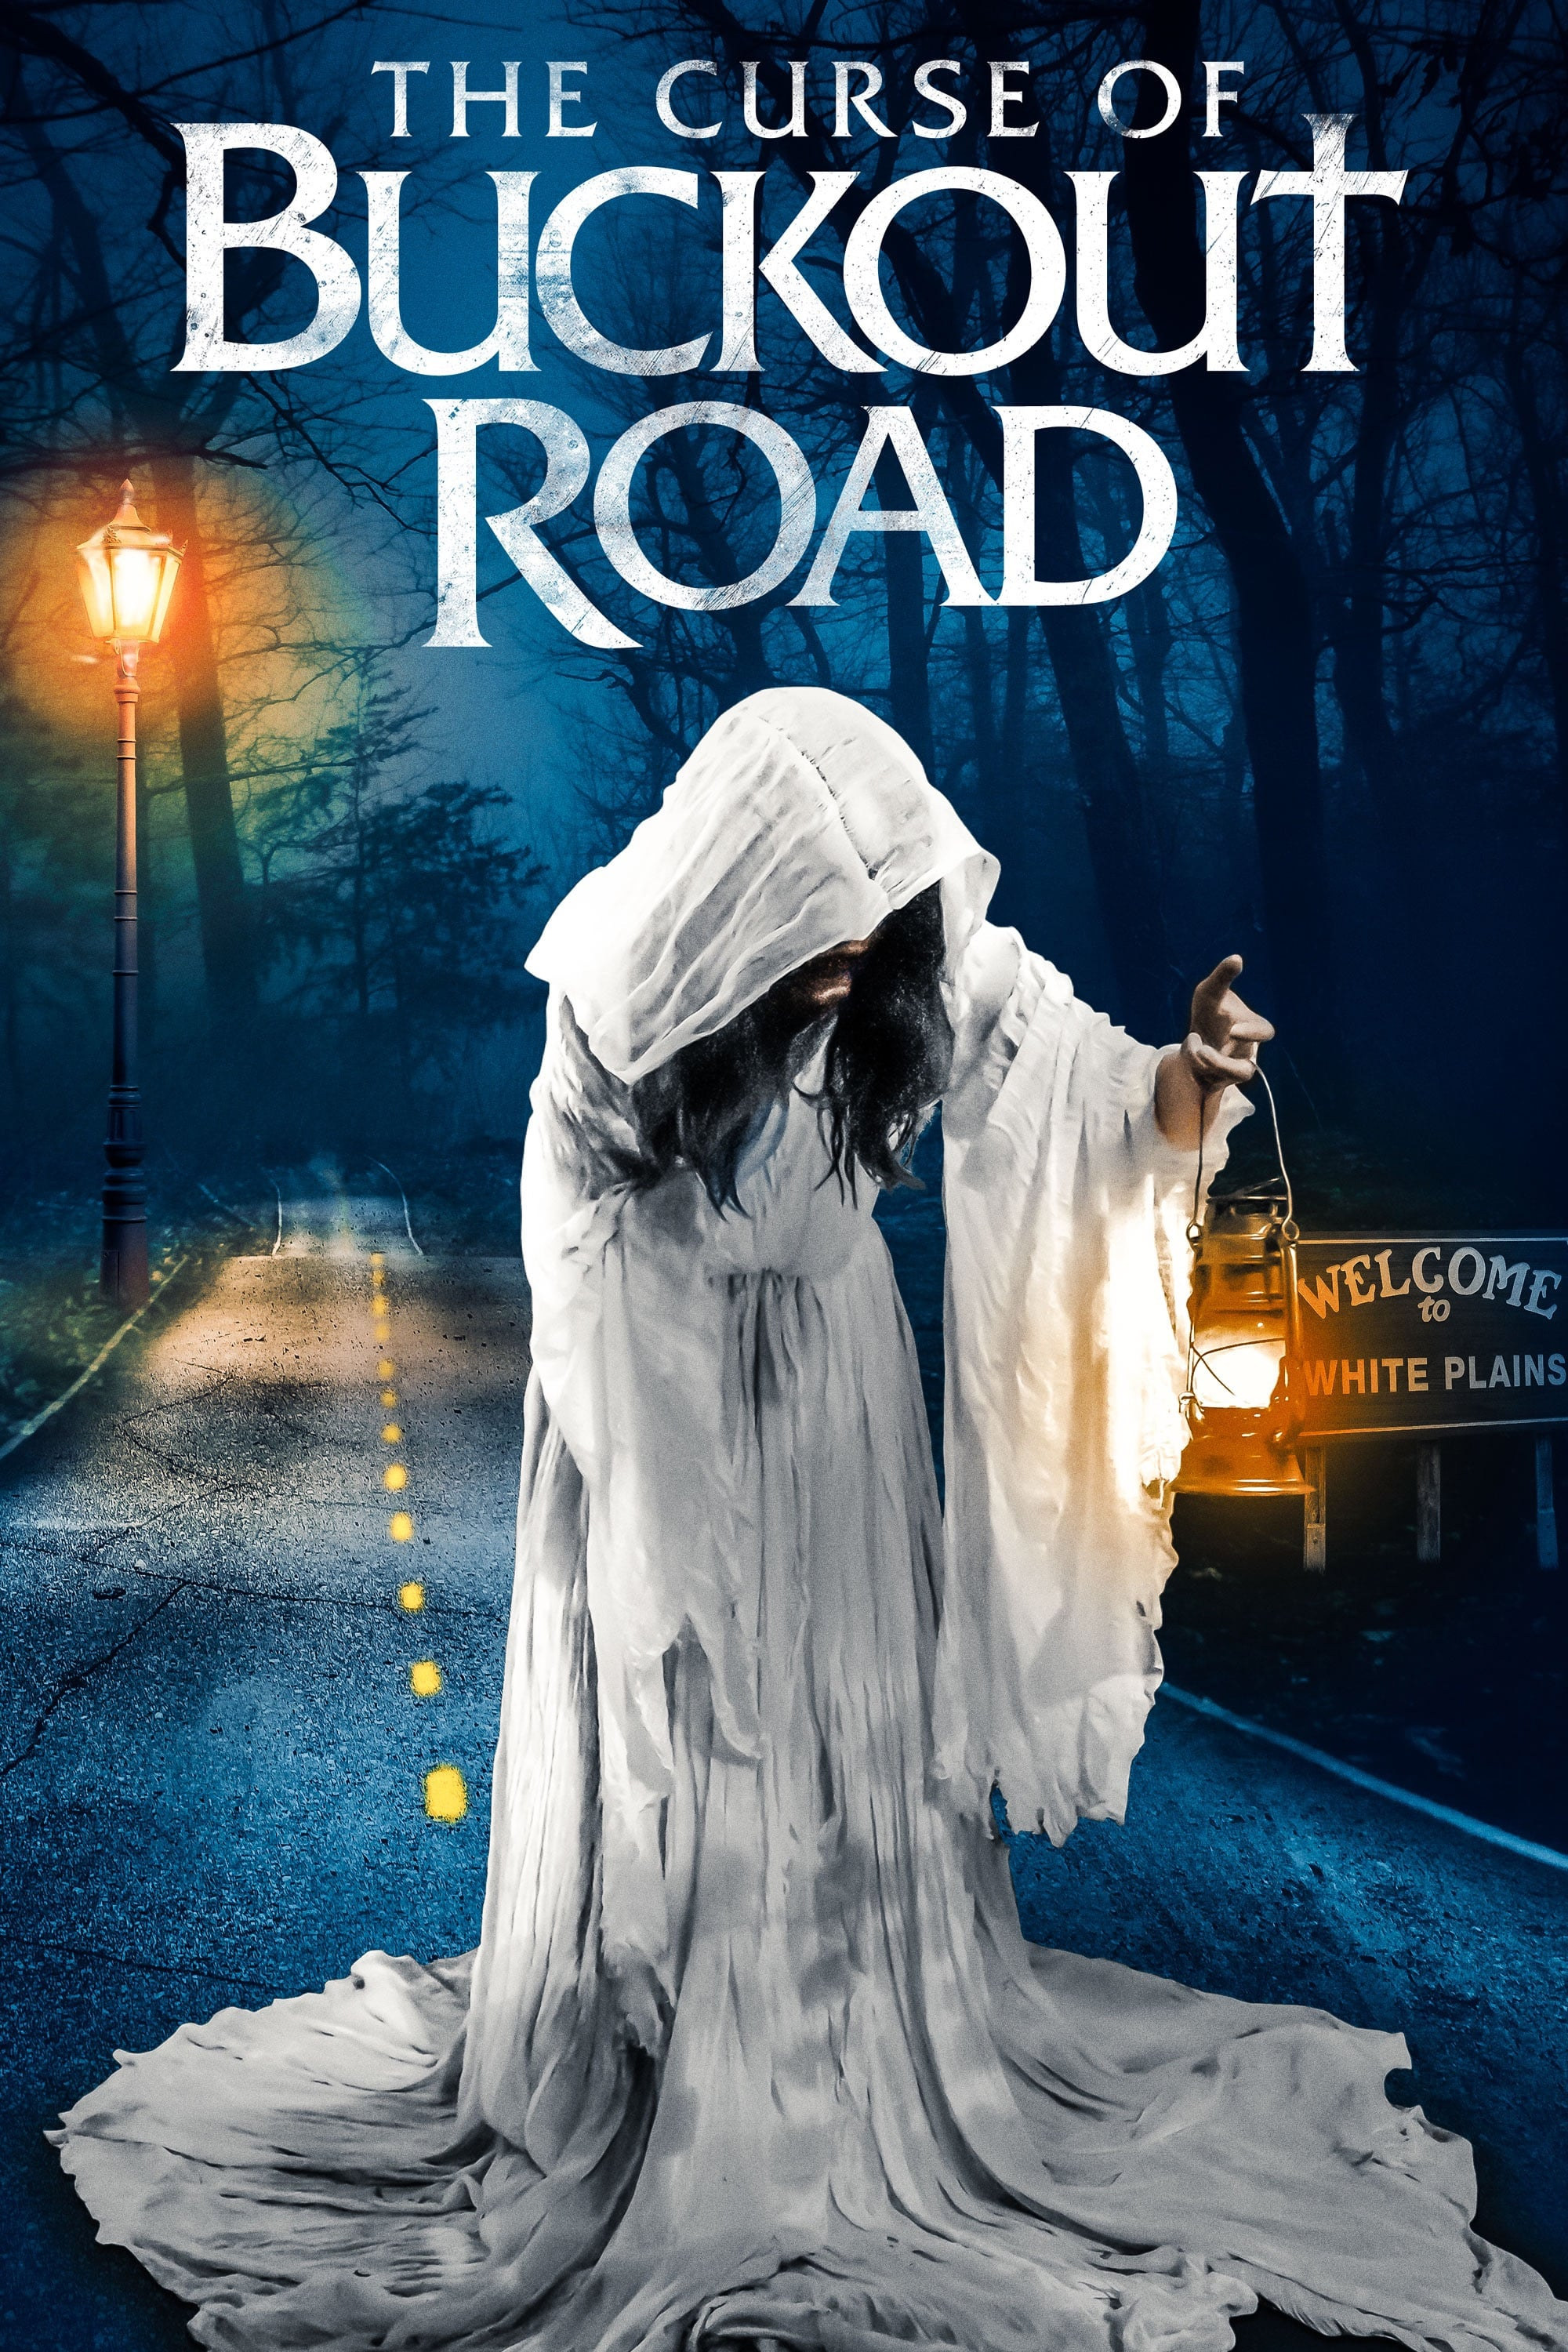 The Curse of Buckout Road (2019)